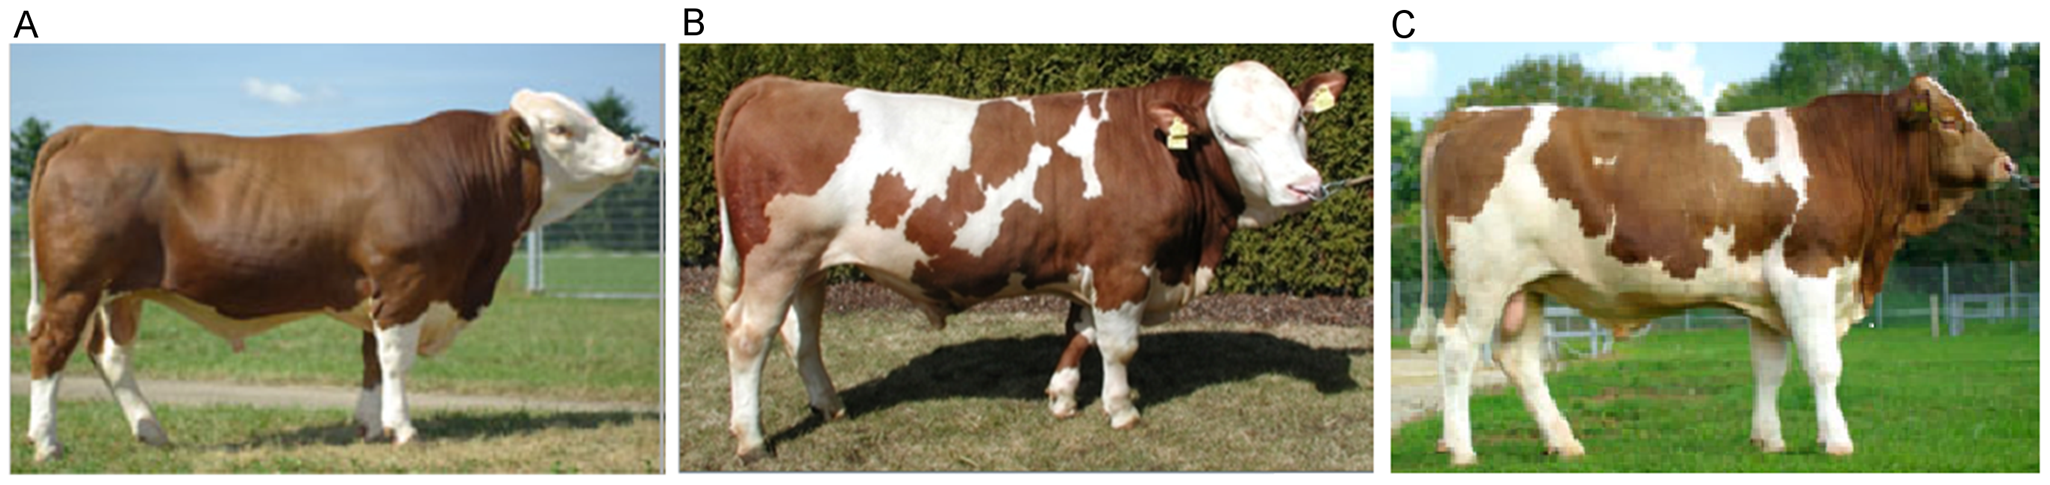 Fleckvieh animals with different coat coloring phenotypes.